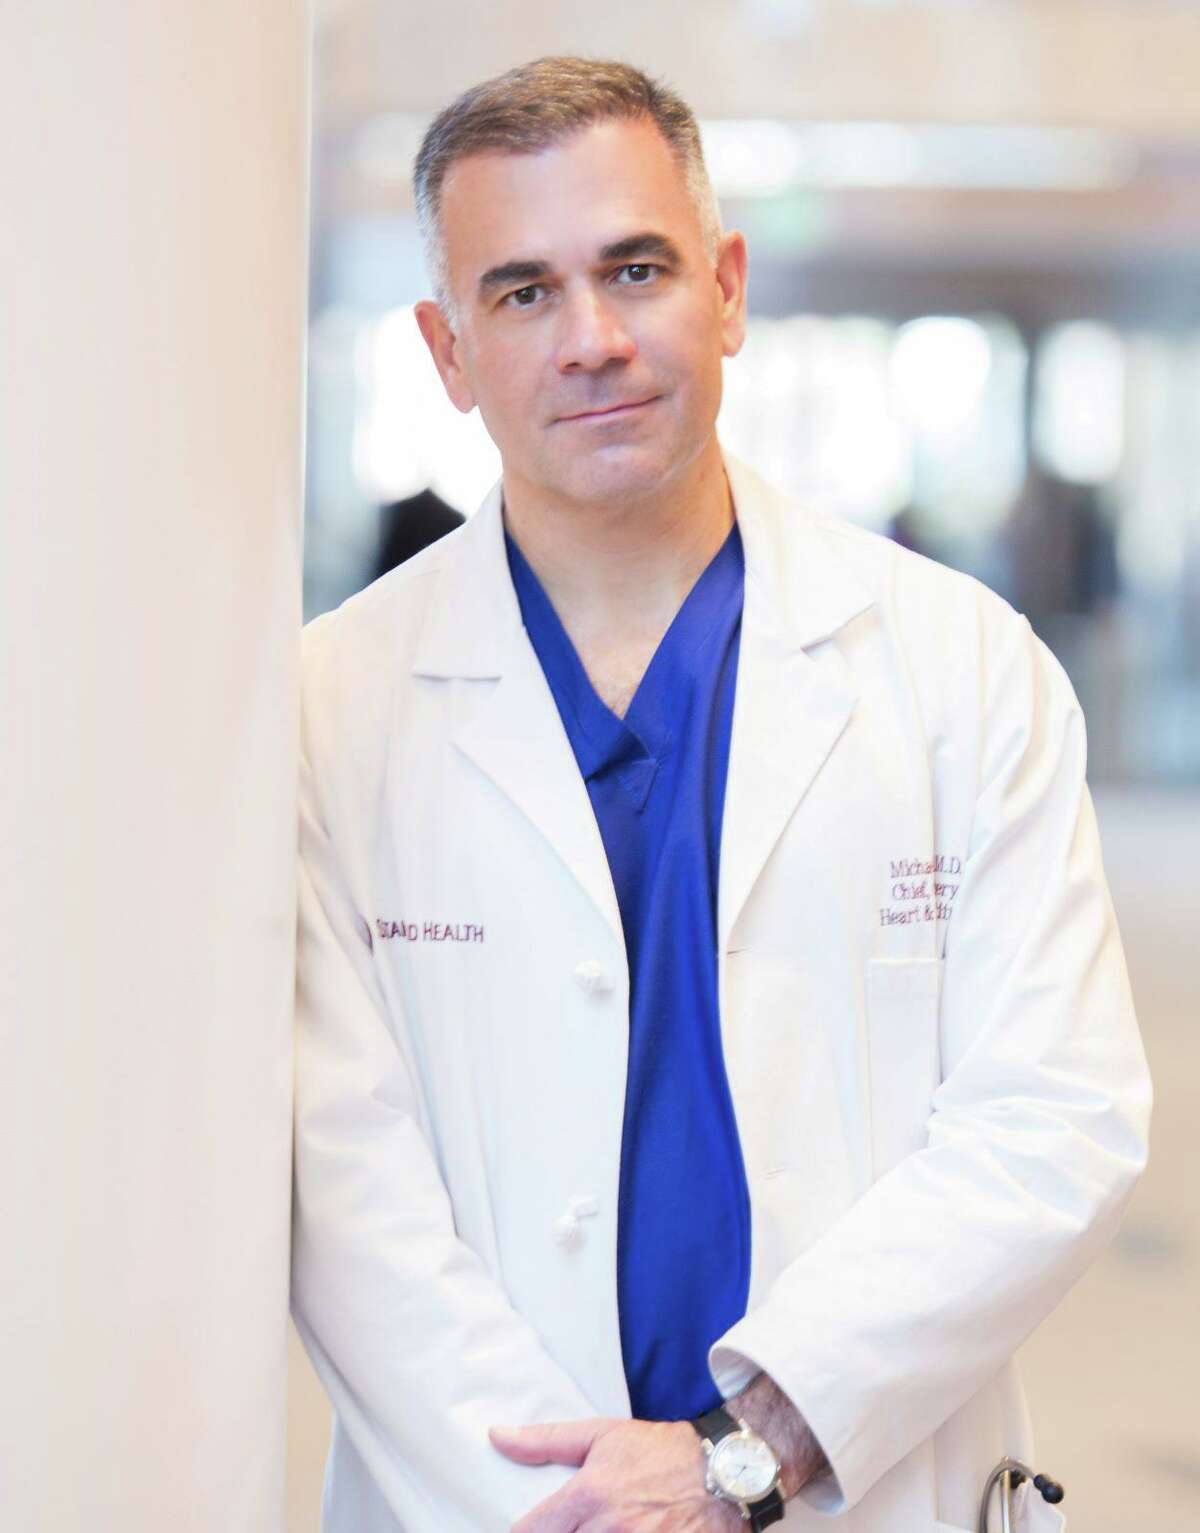 Dr. Michael Coady, a pianist who is also chief of cardiac surgery and co-director of the Heart and Vascular Institute at Stamford Health, will be among the performers in